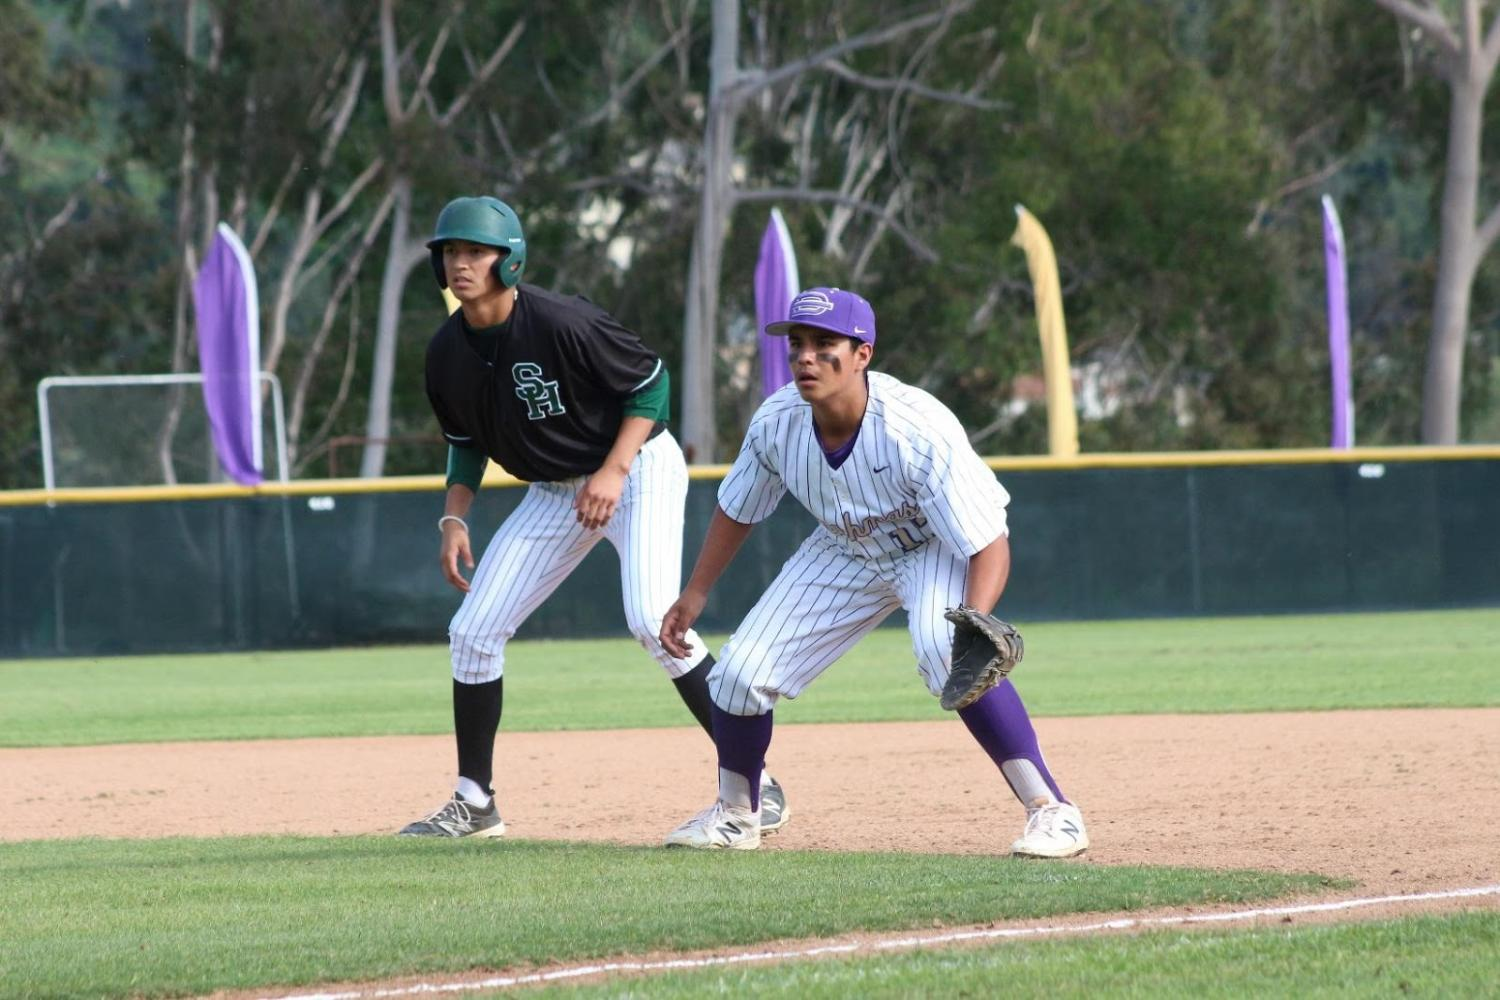 Junior Jairemy Pulido takes a lead in the South Hills game.